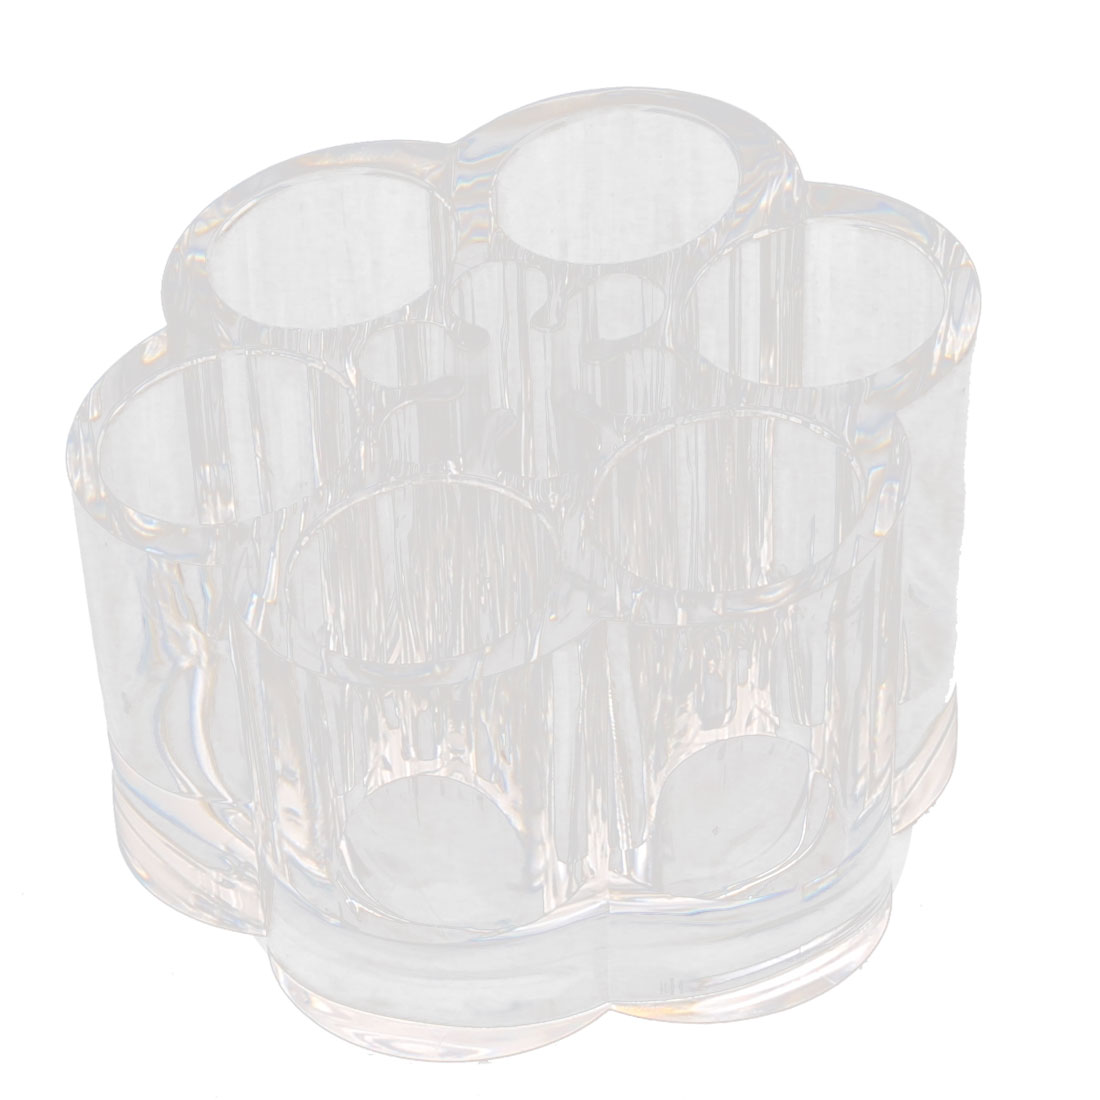 Acrylic Flower Shape Lipstick Cosmetic Brush Holder Jewelry Box Organizer Clear